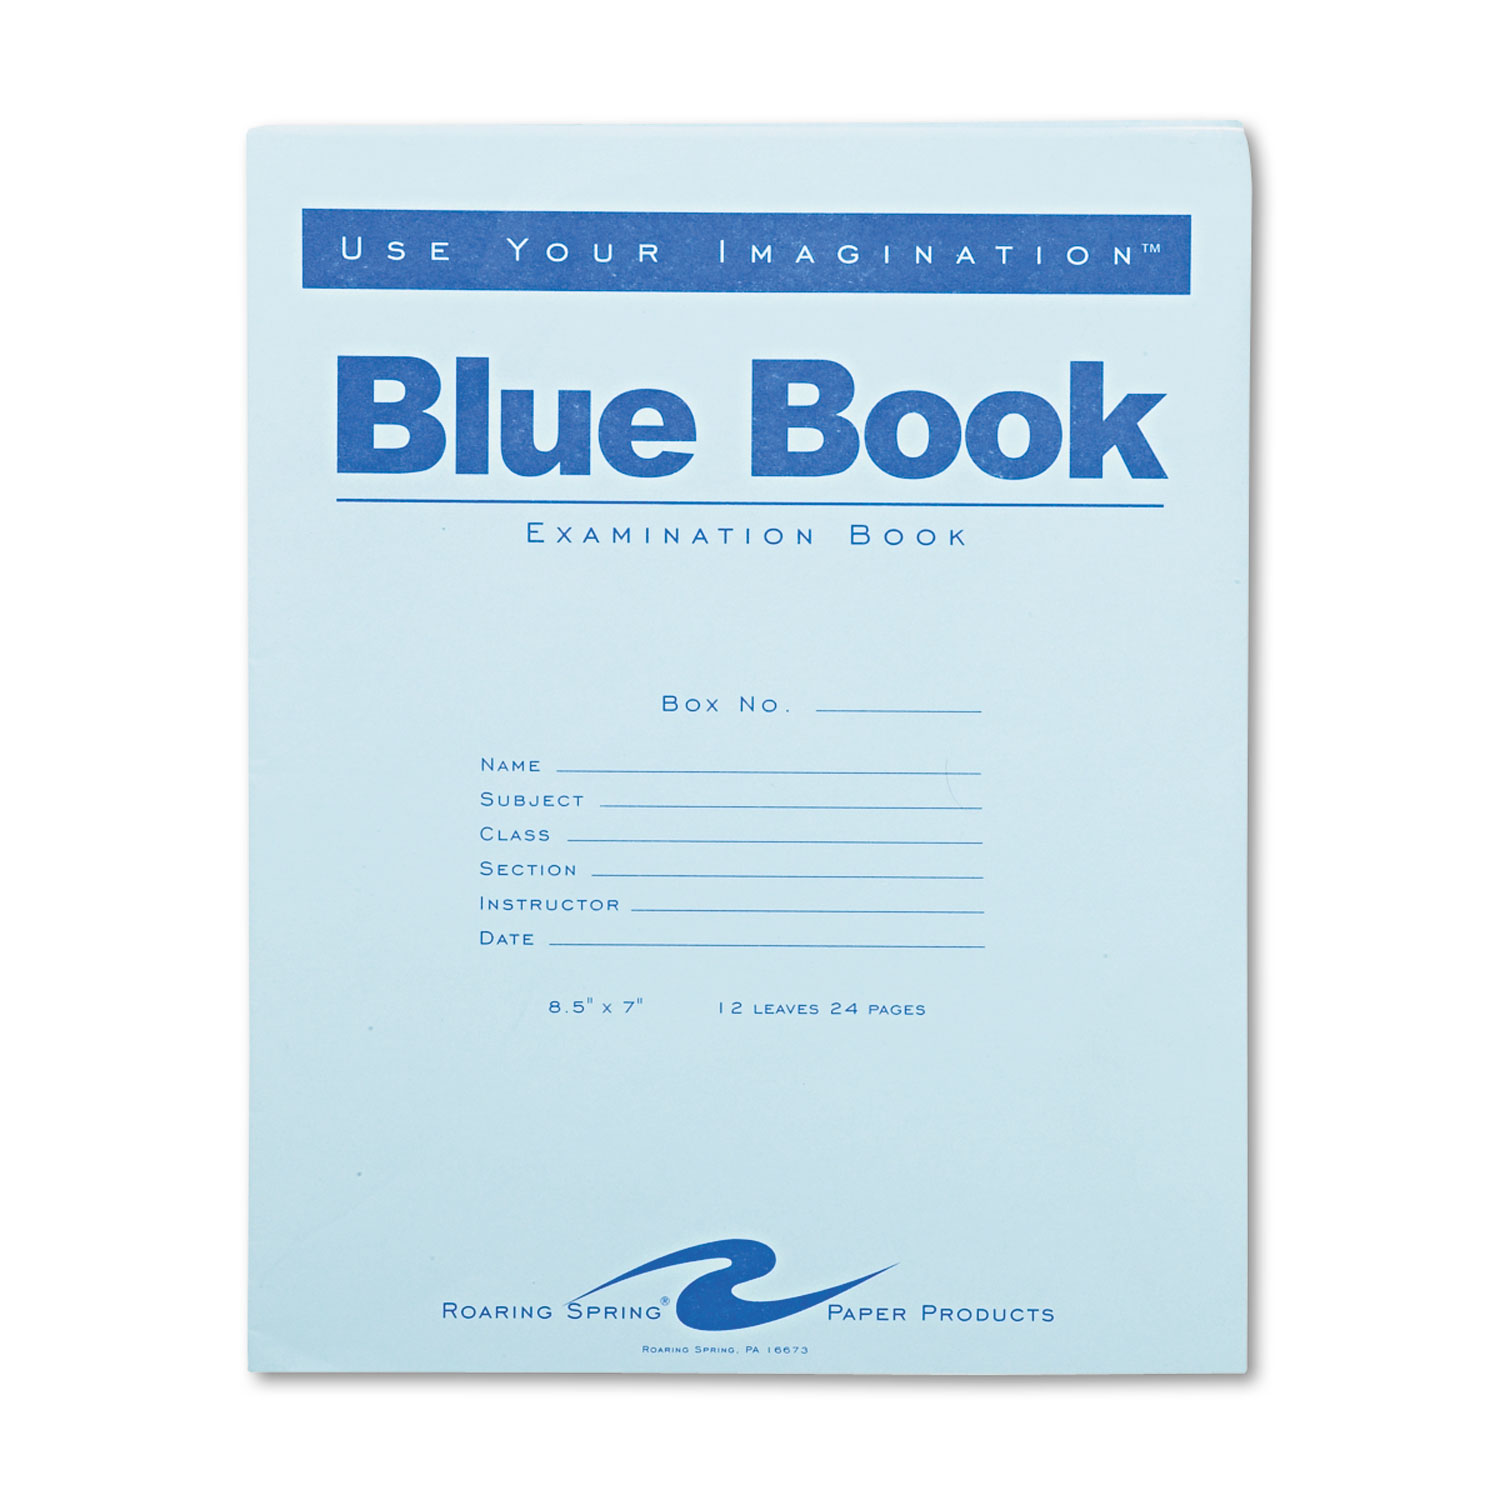 Roaring Spring Exam Blue Book, Legal Rule, 8 1/2 X 7, White, 12 Sheets/24 Pages ROA77513 Includes one notebook.